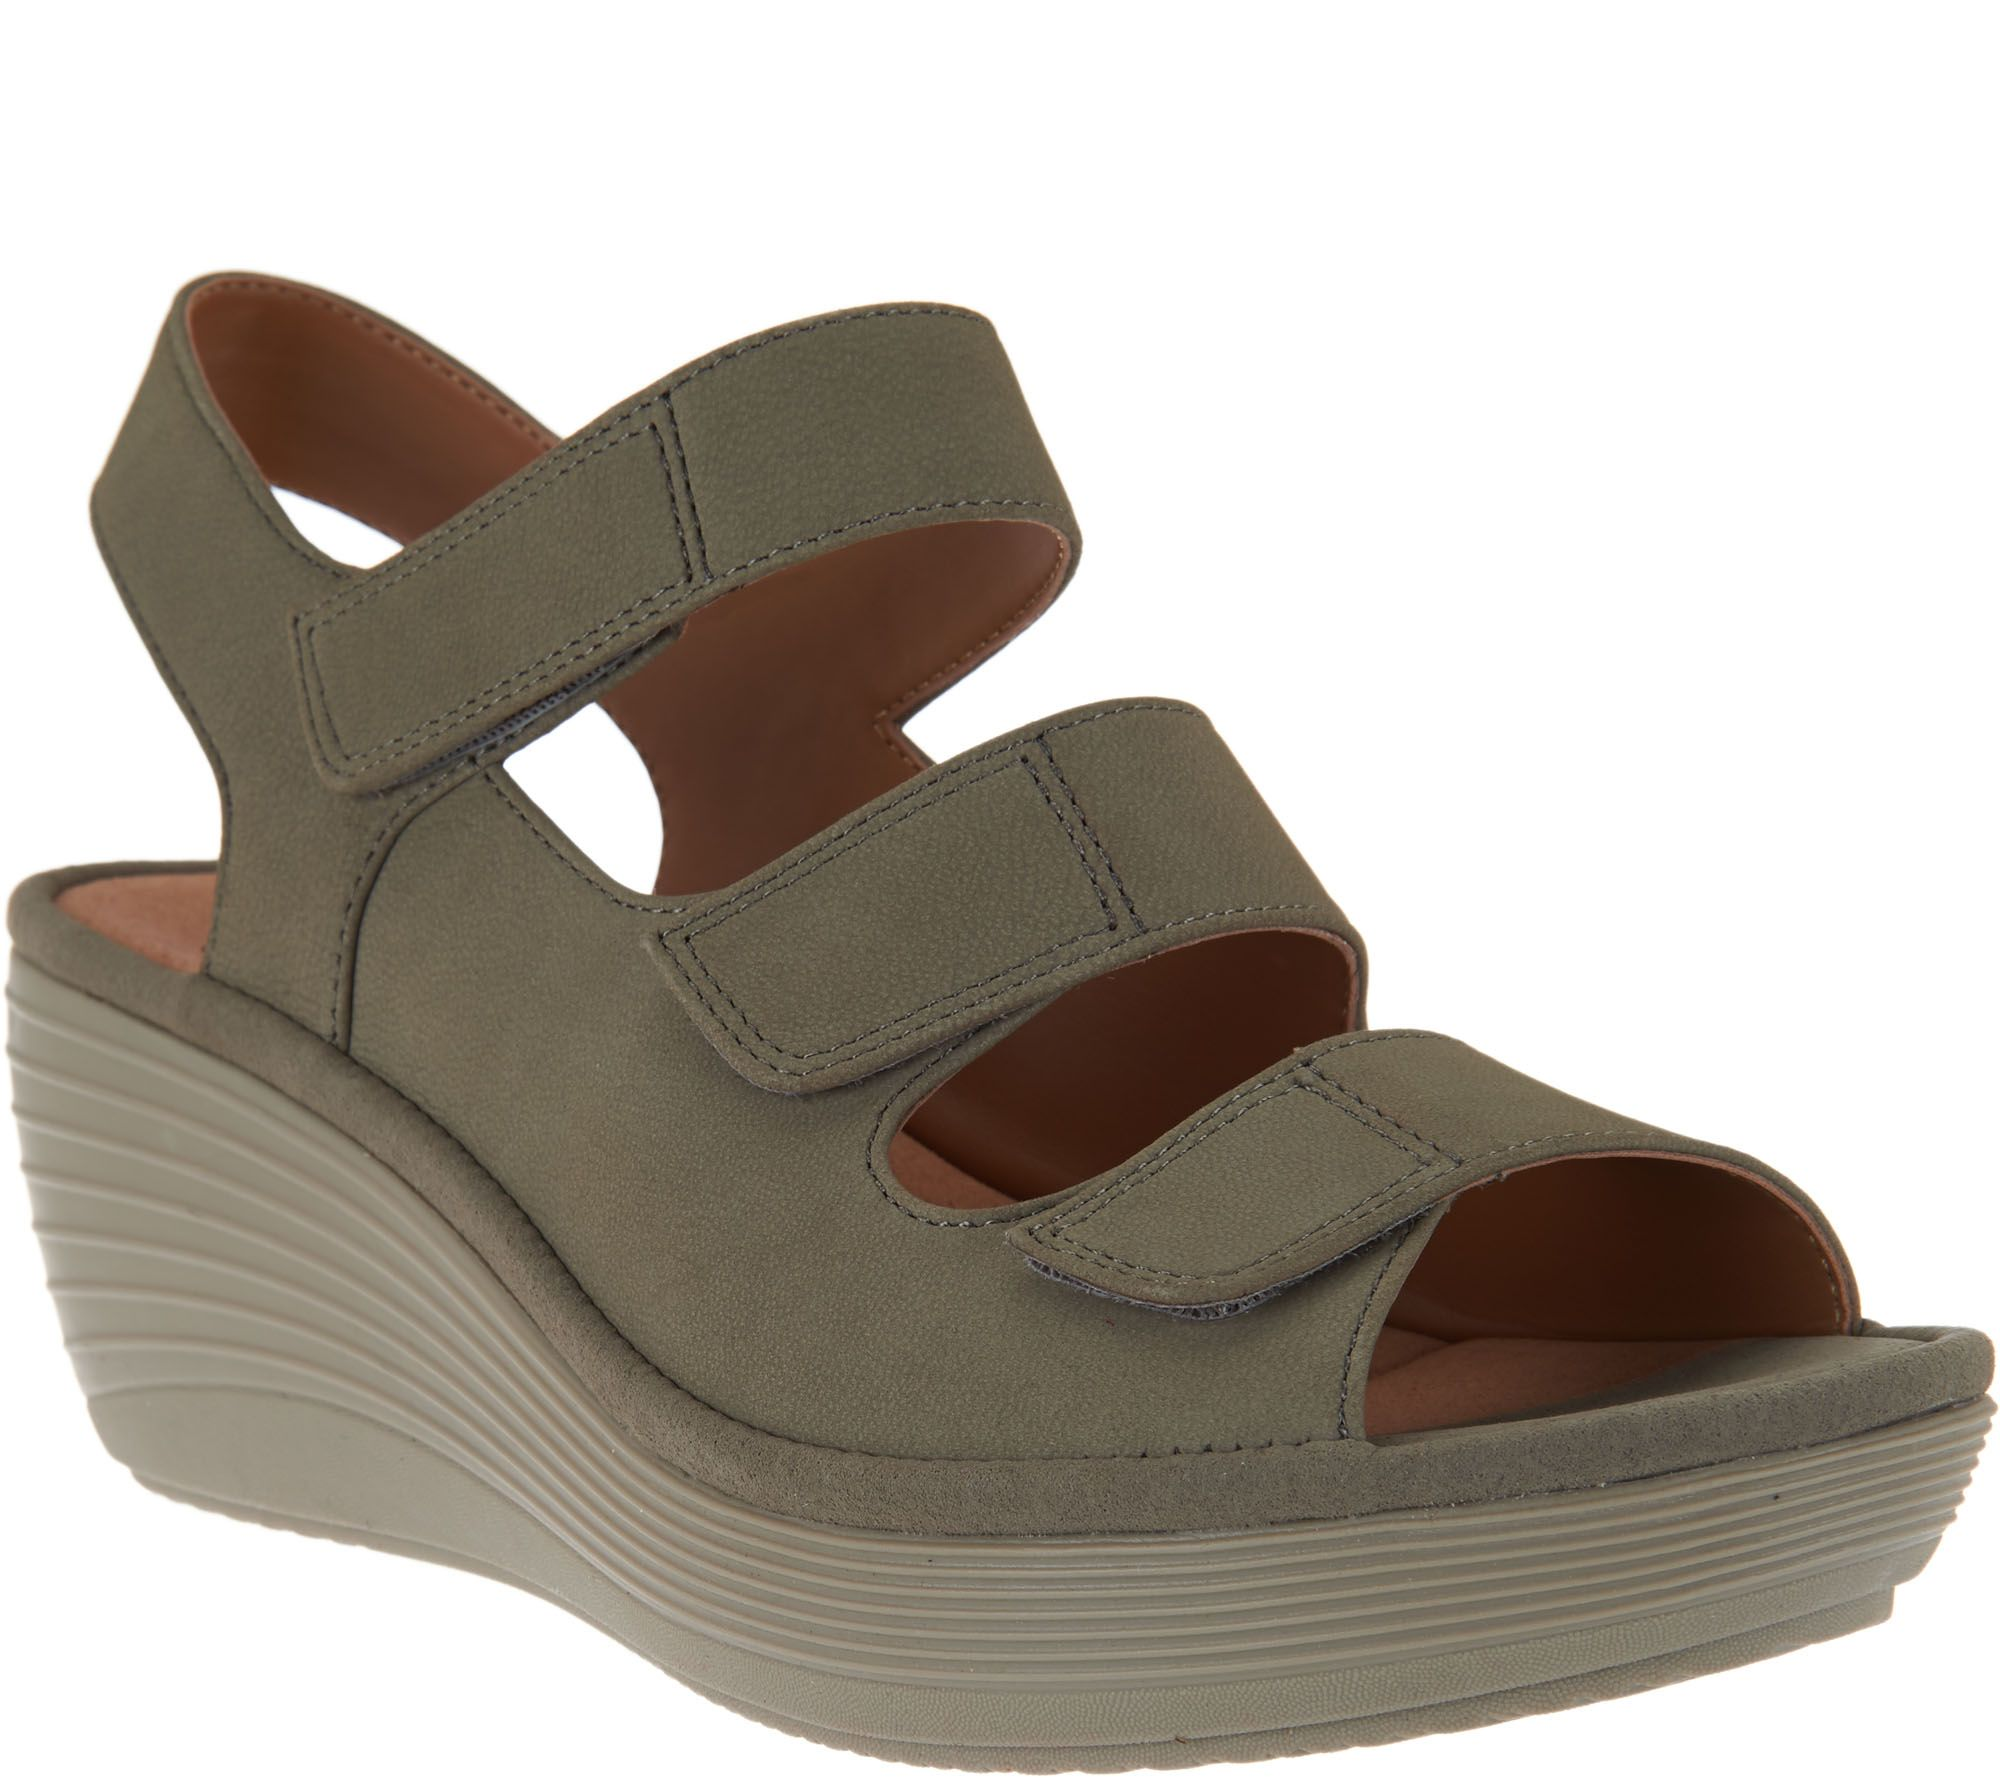 Clarks Nubuck Triple Strap Wedge Sandals - Reedly Juno - Page 1 — QVC.com